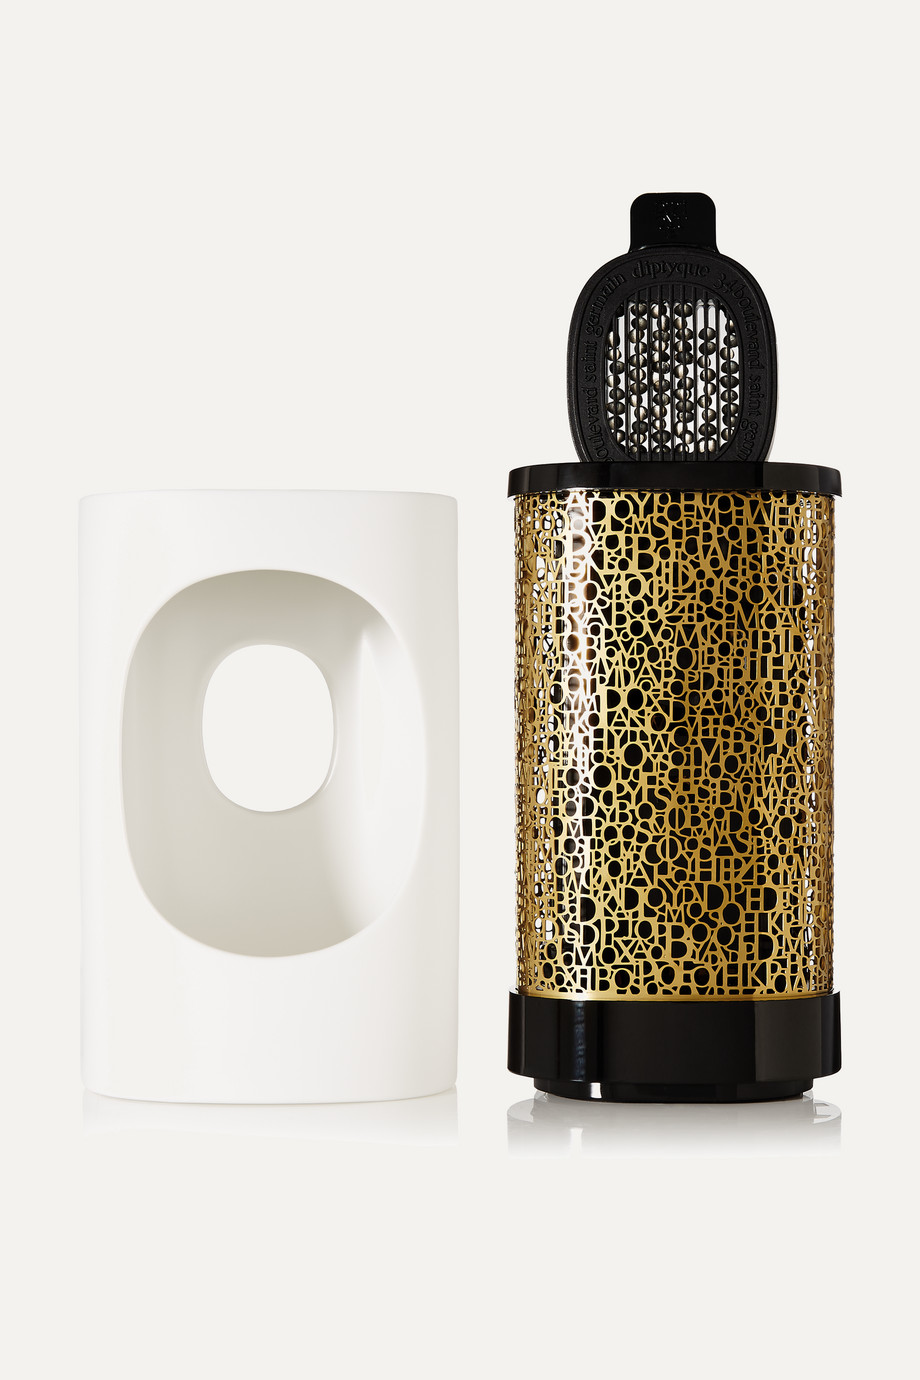 Diptyque Un Air de Diptyque Electric Diffuser